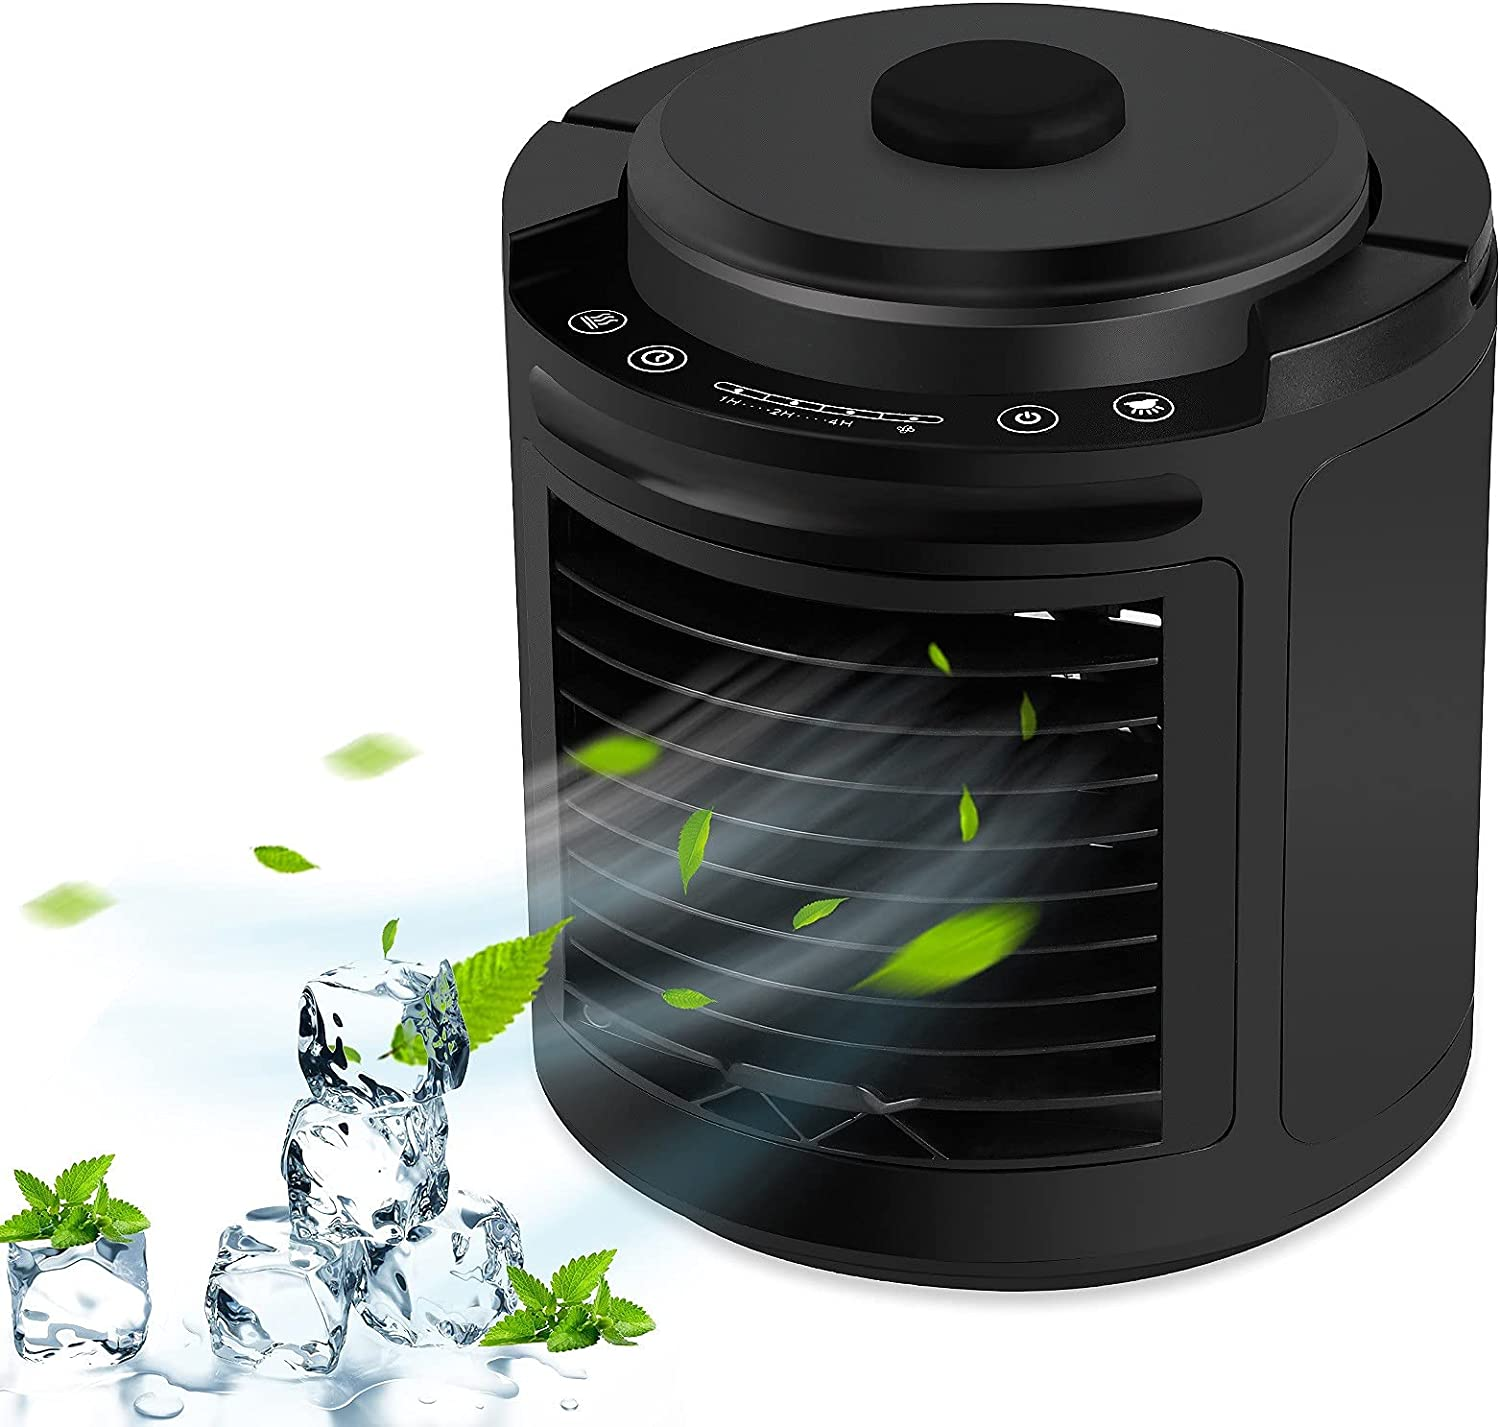 Free shipping on posting reviews Personal Portable Air Cooler and Add Evaporativ Chicago Mall Water Humidifier